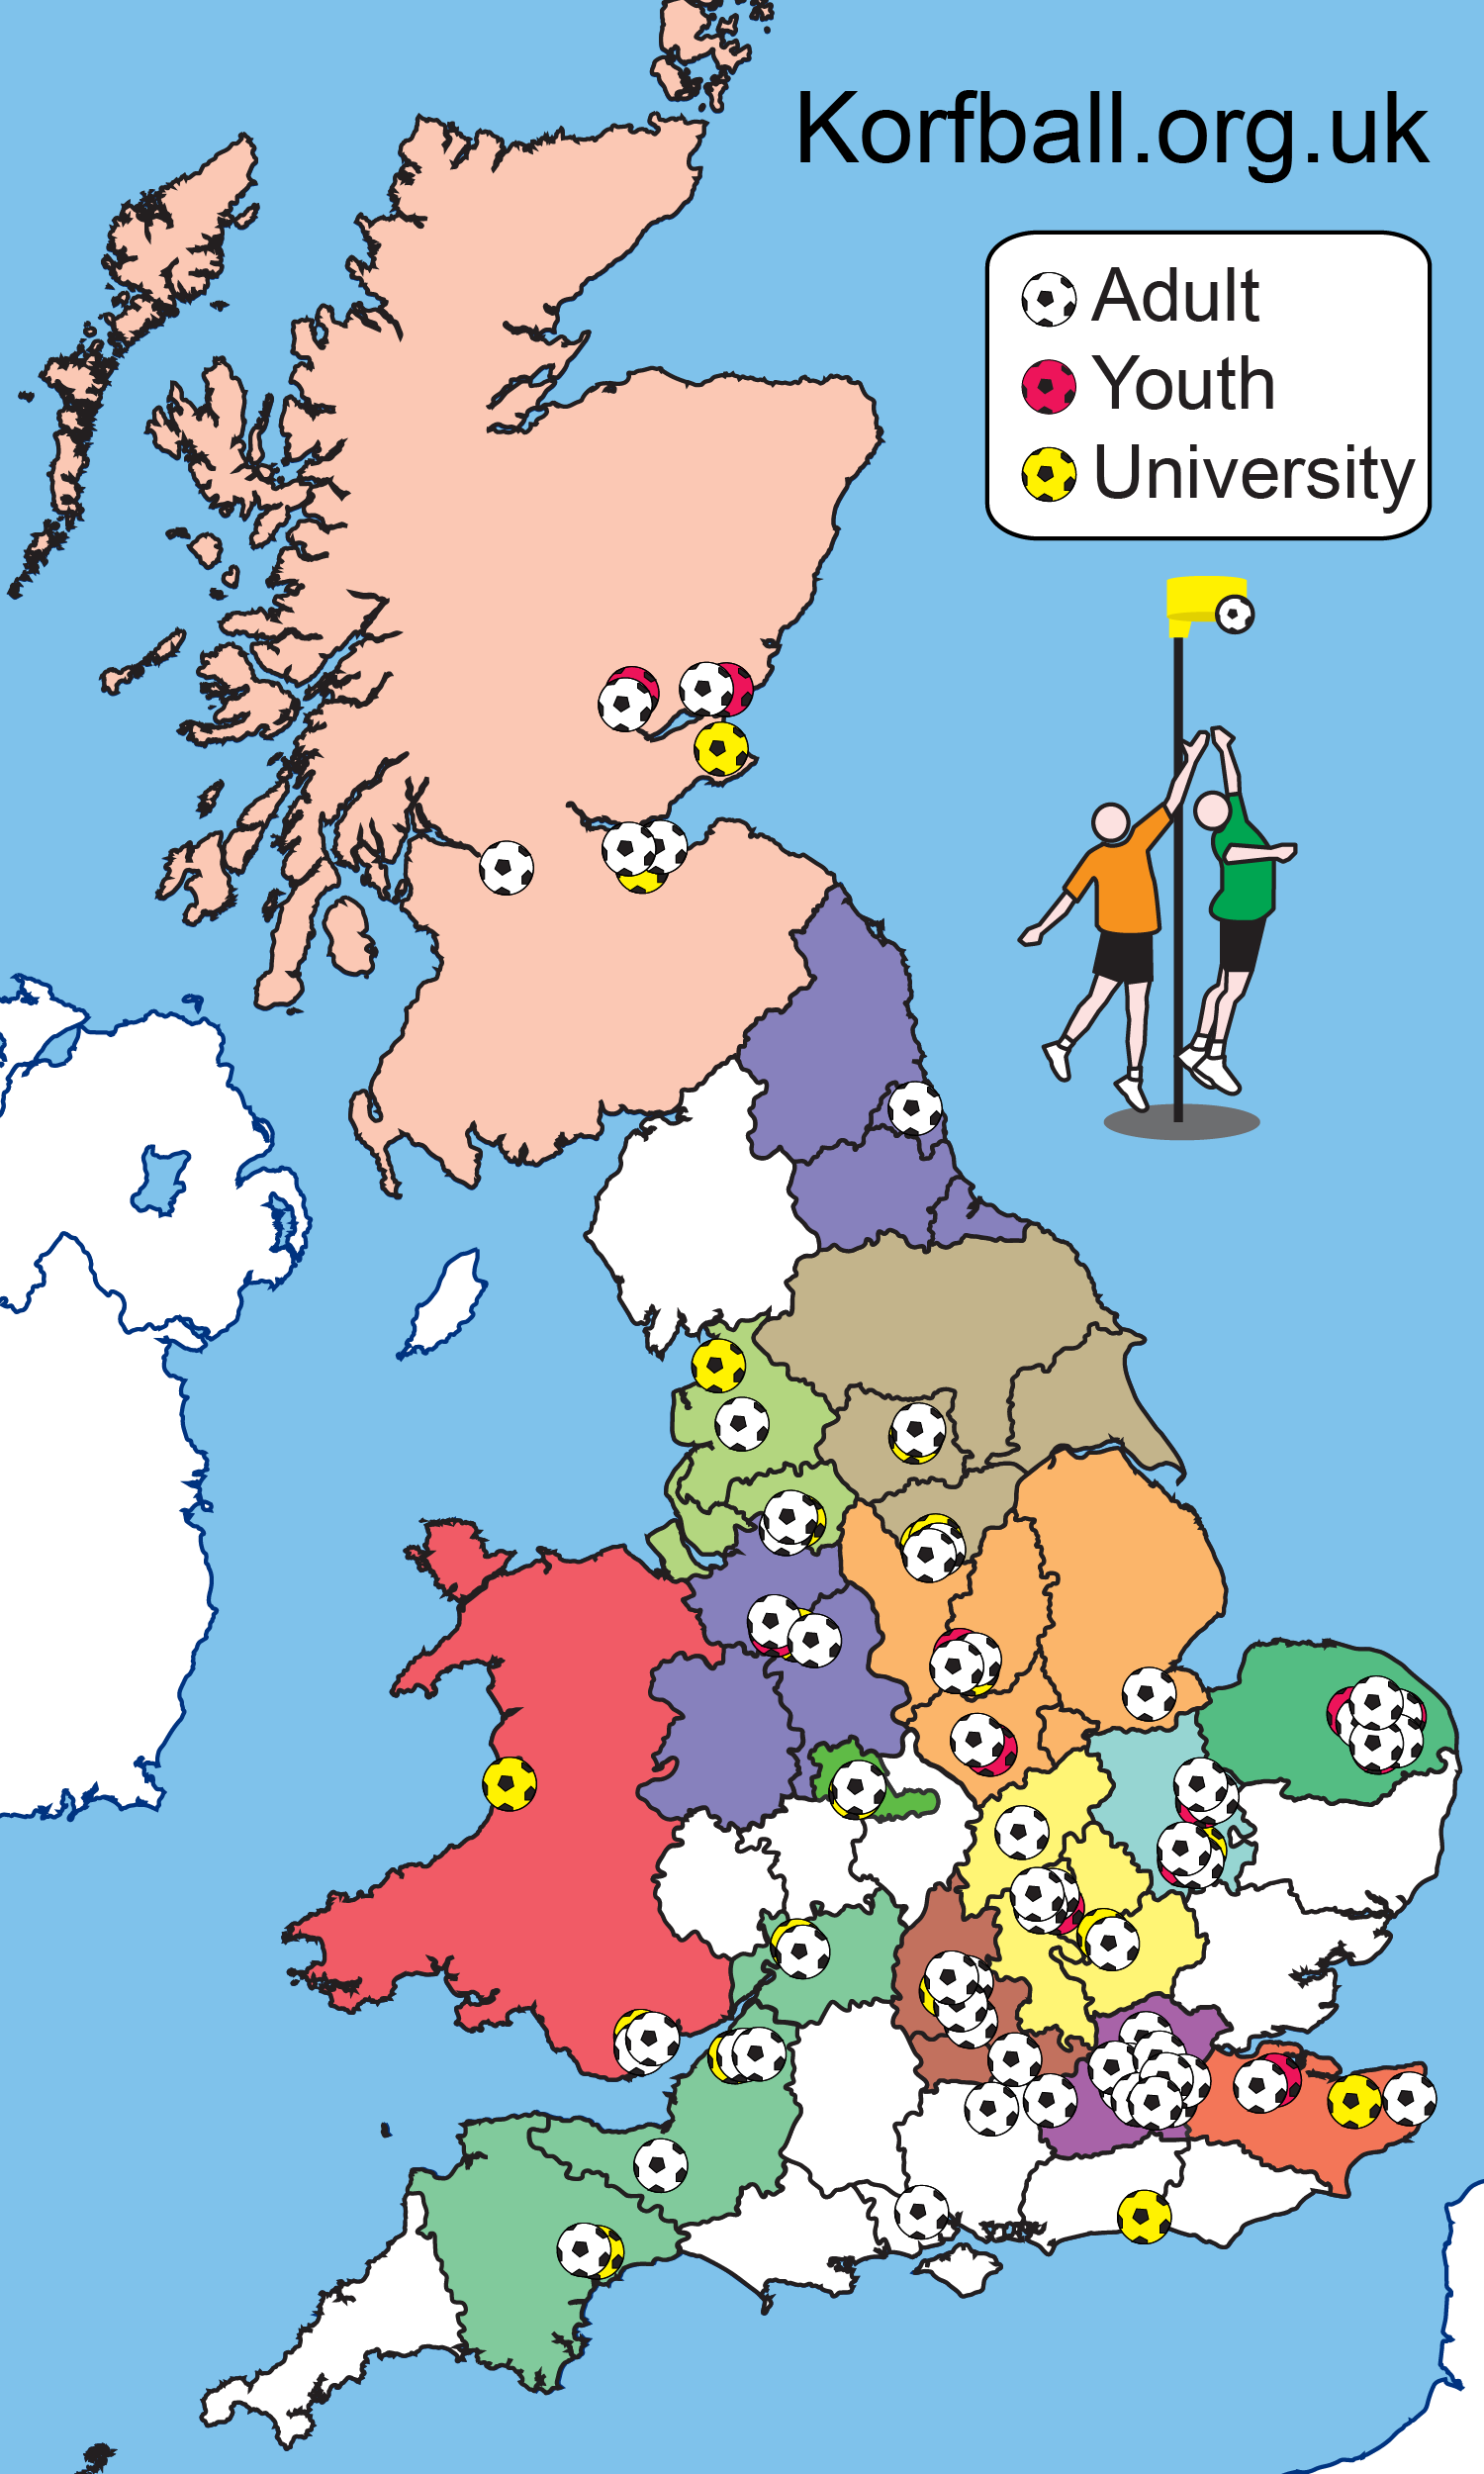 map of UK korfball clubs and areas